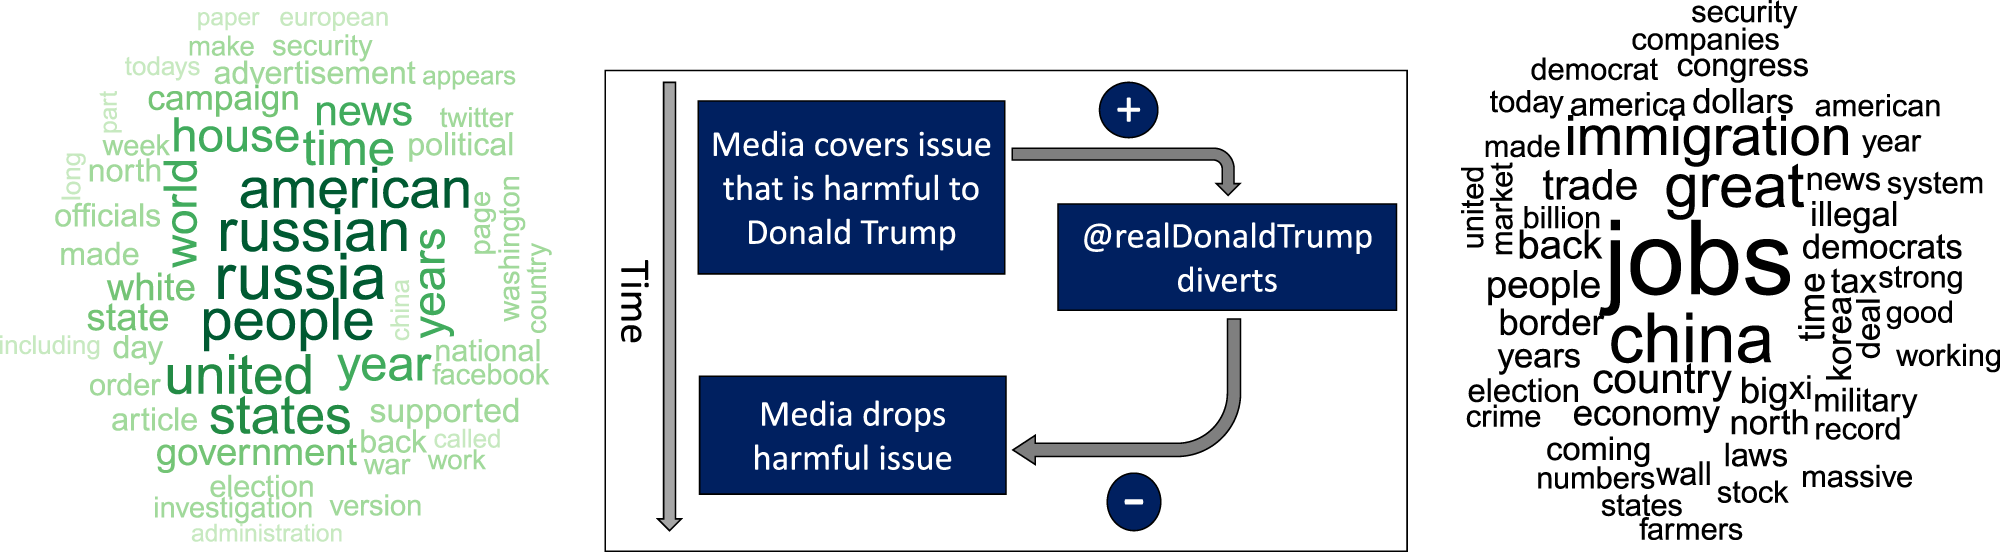 12+ Using the president's tweets to understand political diversion in ... Image